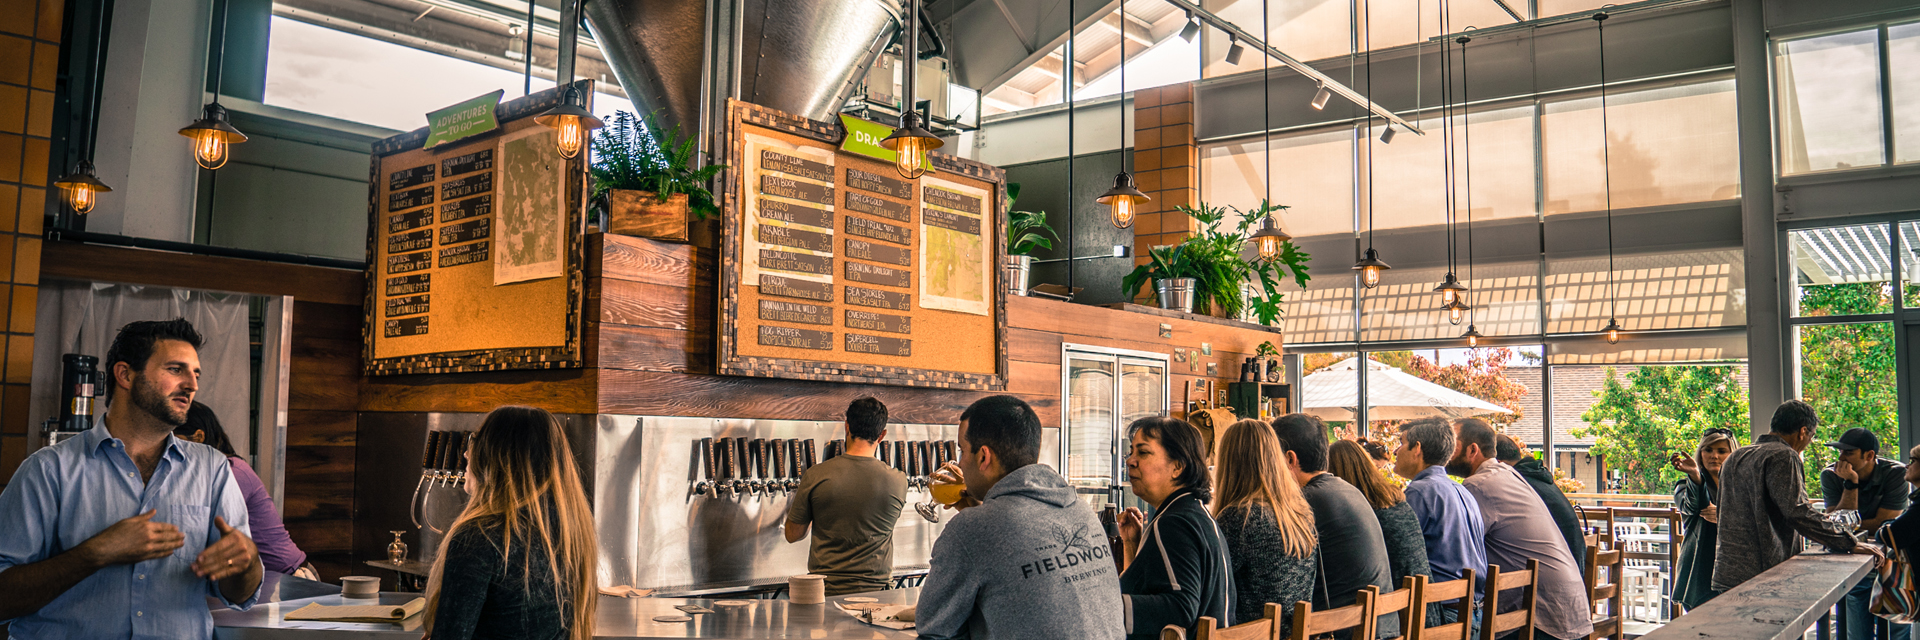 Fieldwork Brewing | Napa's Emerging Beer Scene | Archer Hotel Napa